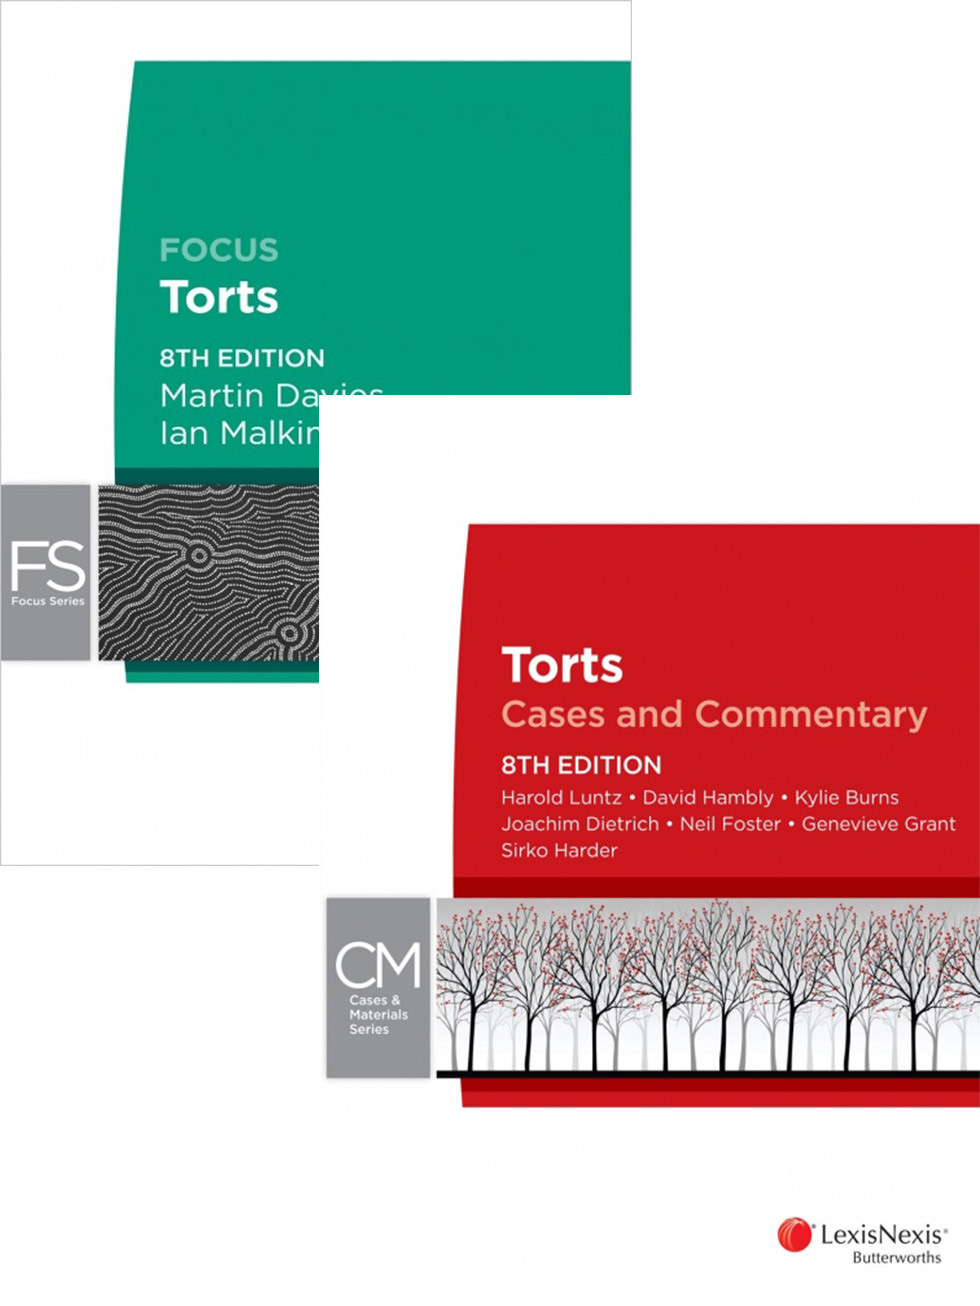 Torts: Cases and Commentary 8th edition + Focus Torts 8th edition